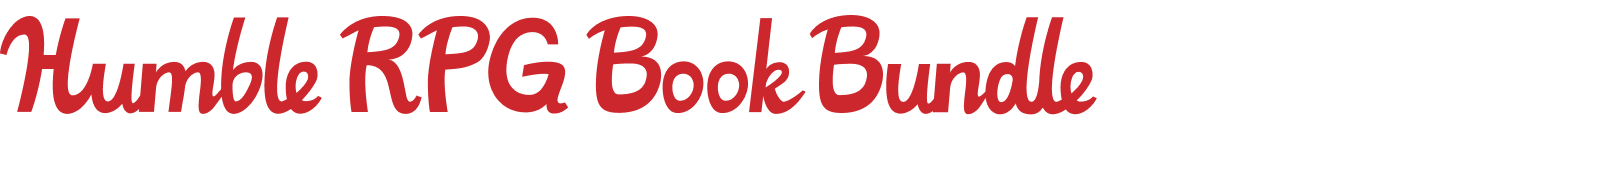 Humble RPG Books Bundle: Tales from the Loop & Symbaroum by Free League